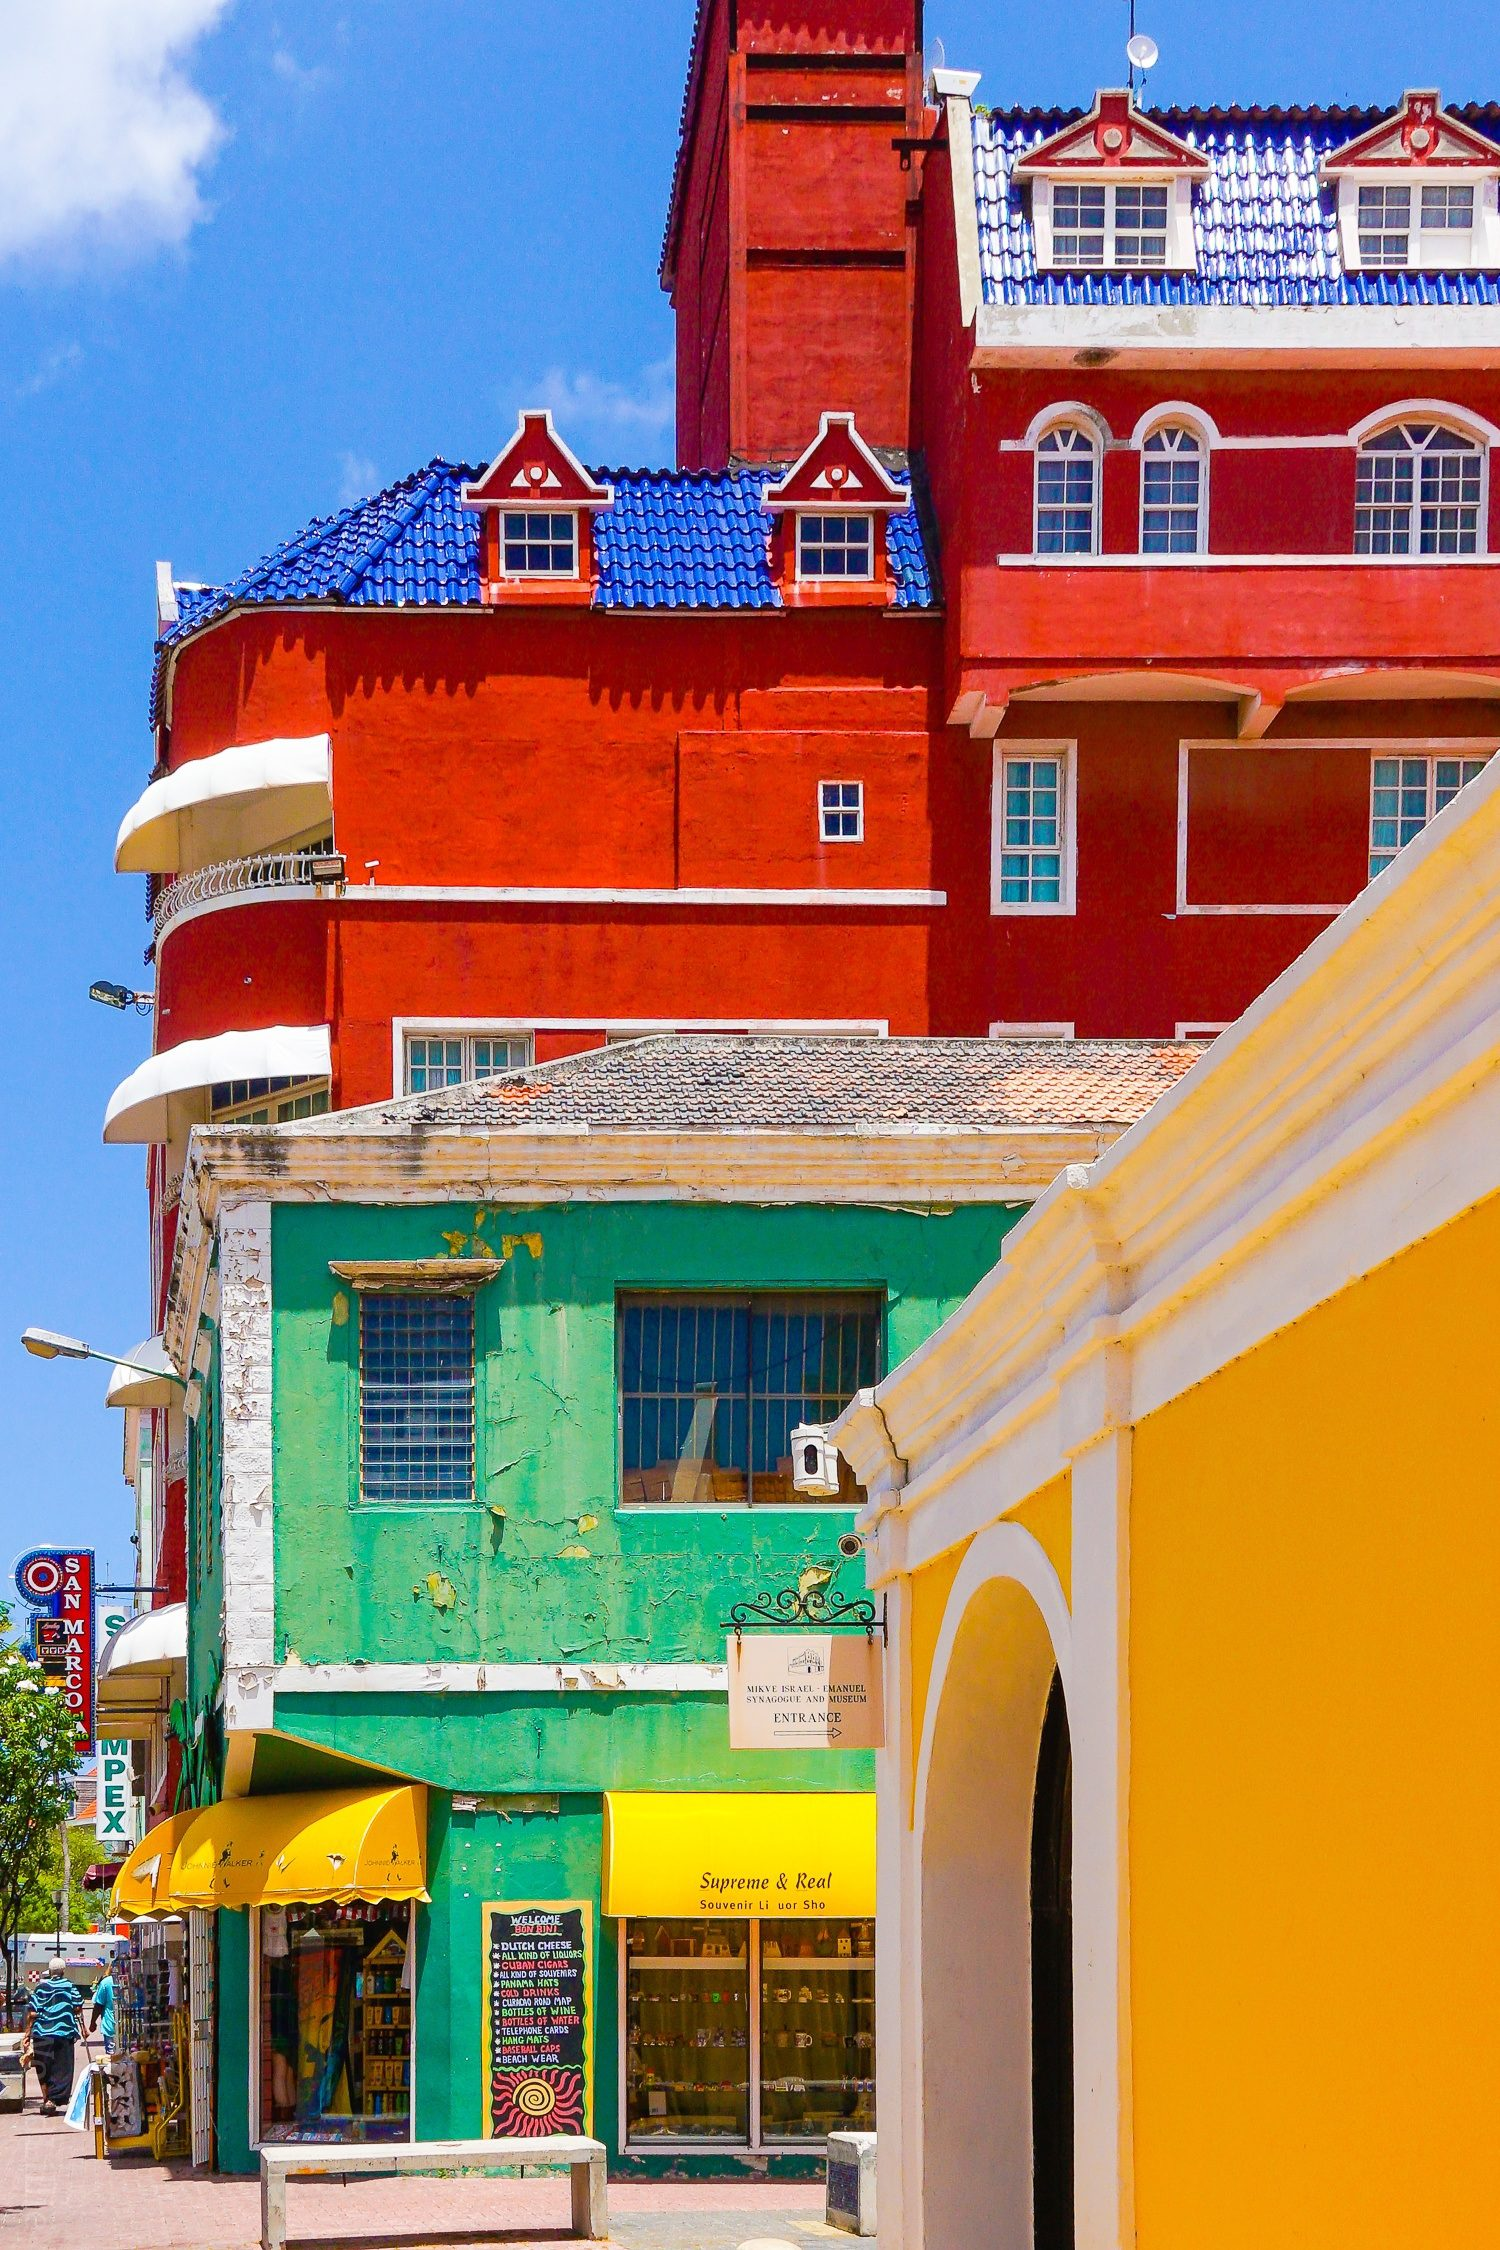 What to do in Curacao: 10 Tips on the beautiful Caribbean island, perfect for vacation travel, good food and hotels, and a fun trip, as seen in gorgeous photos! The oldest synagogue in the Americas is in Curaçao!